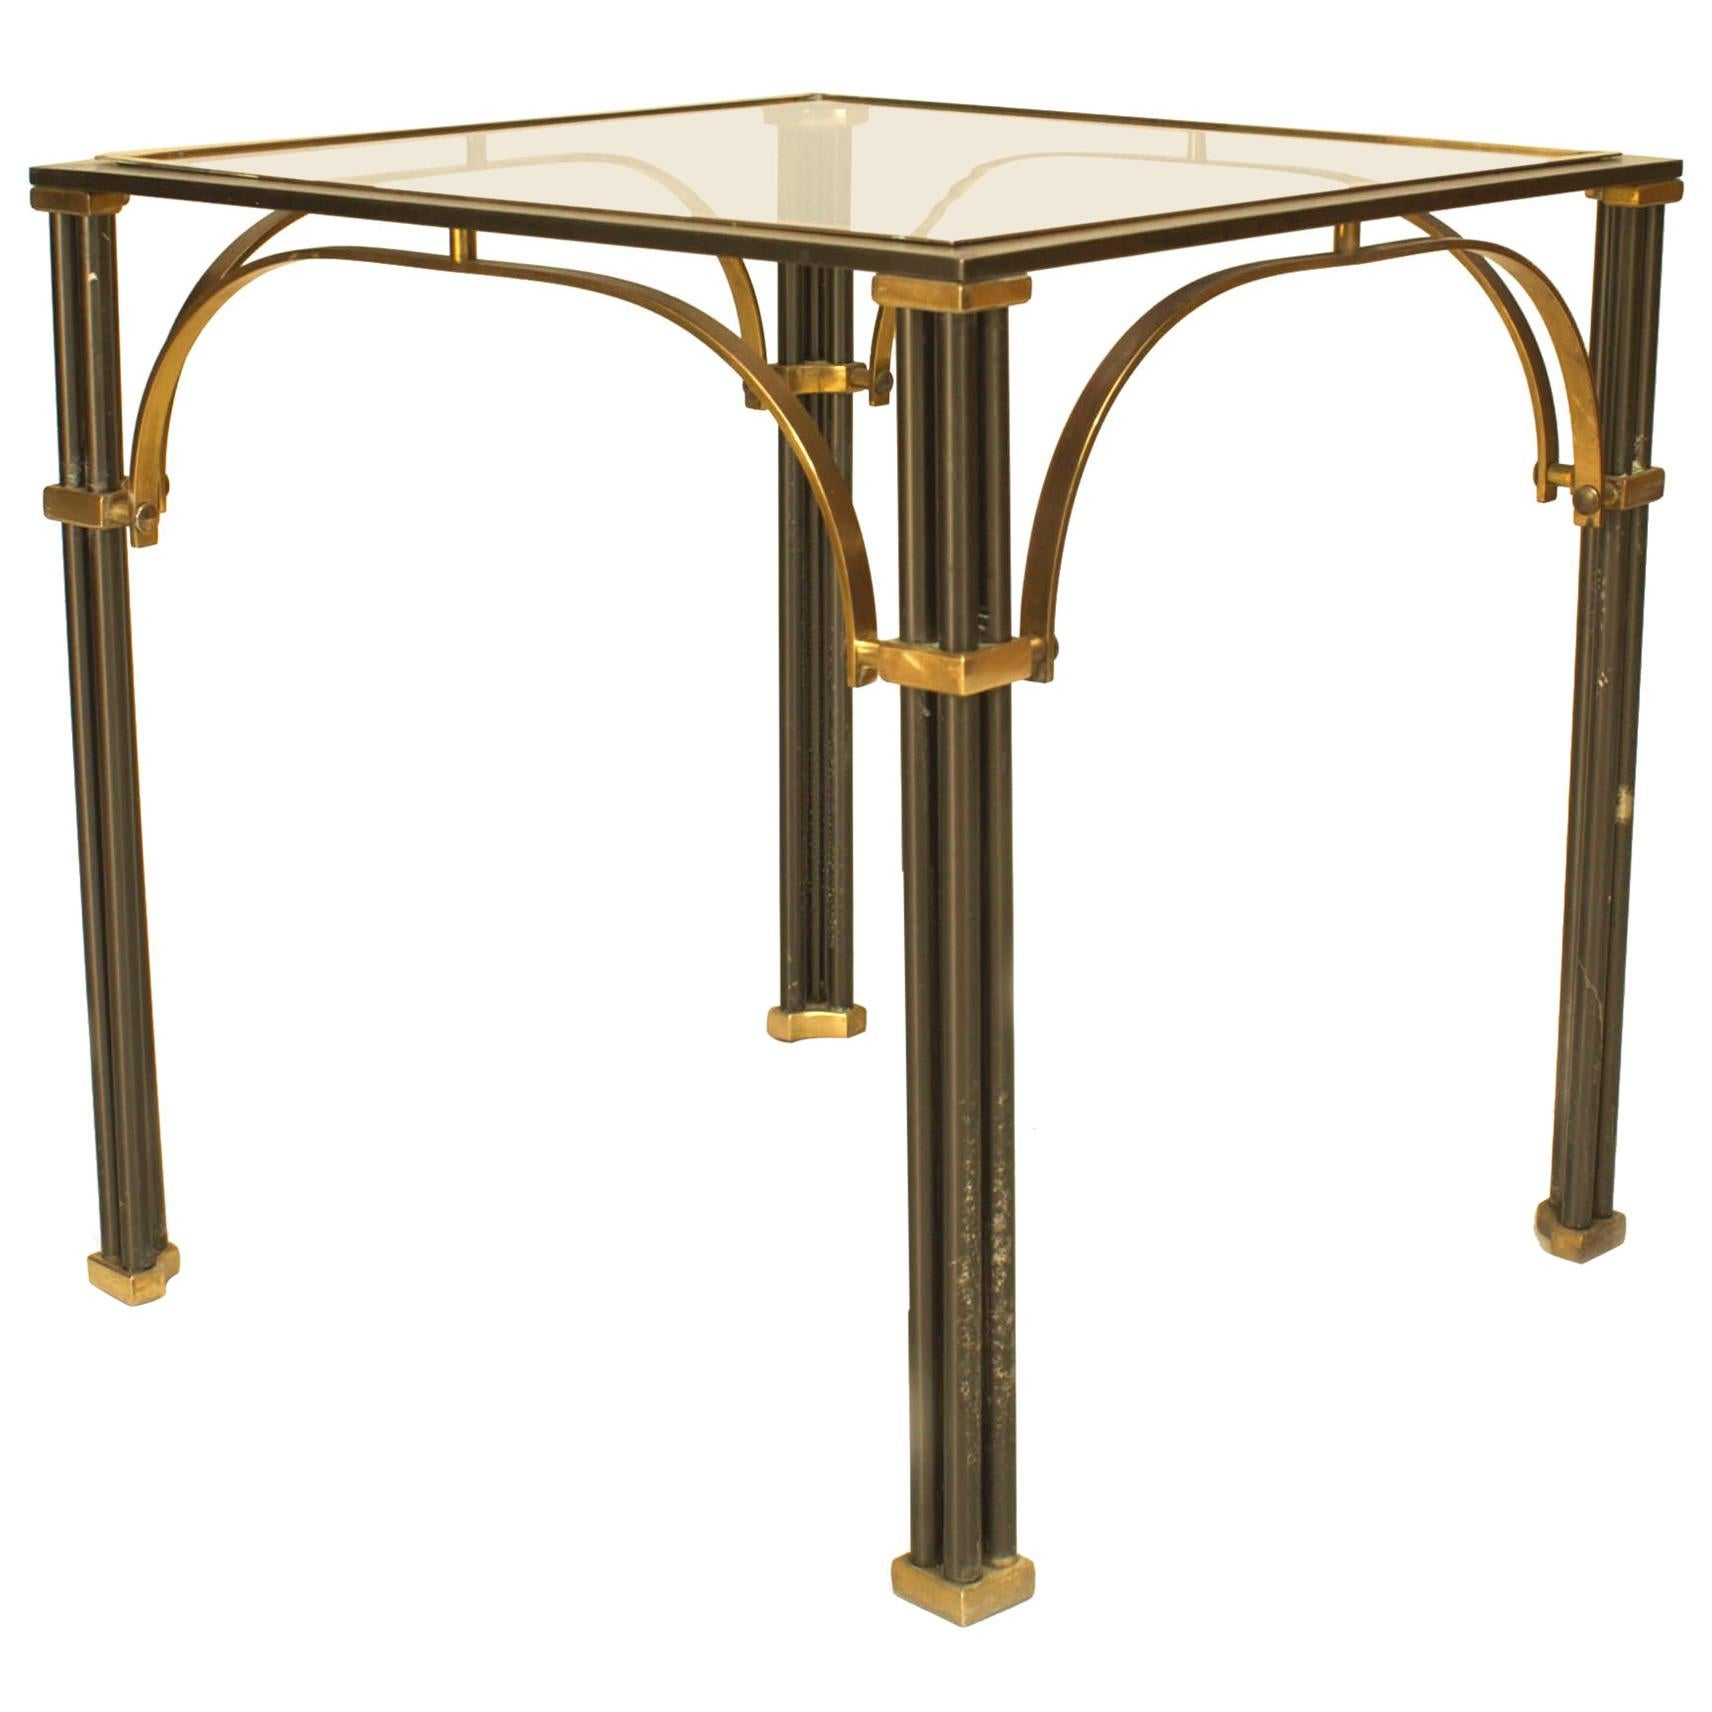 Midcentury French Steel and Brass End Table, Attributed to Maison Jansen